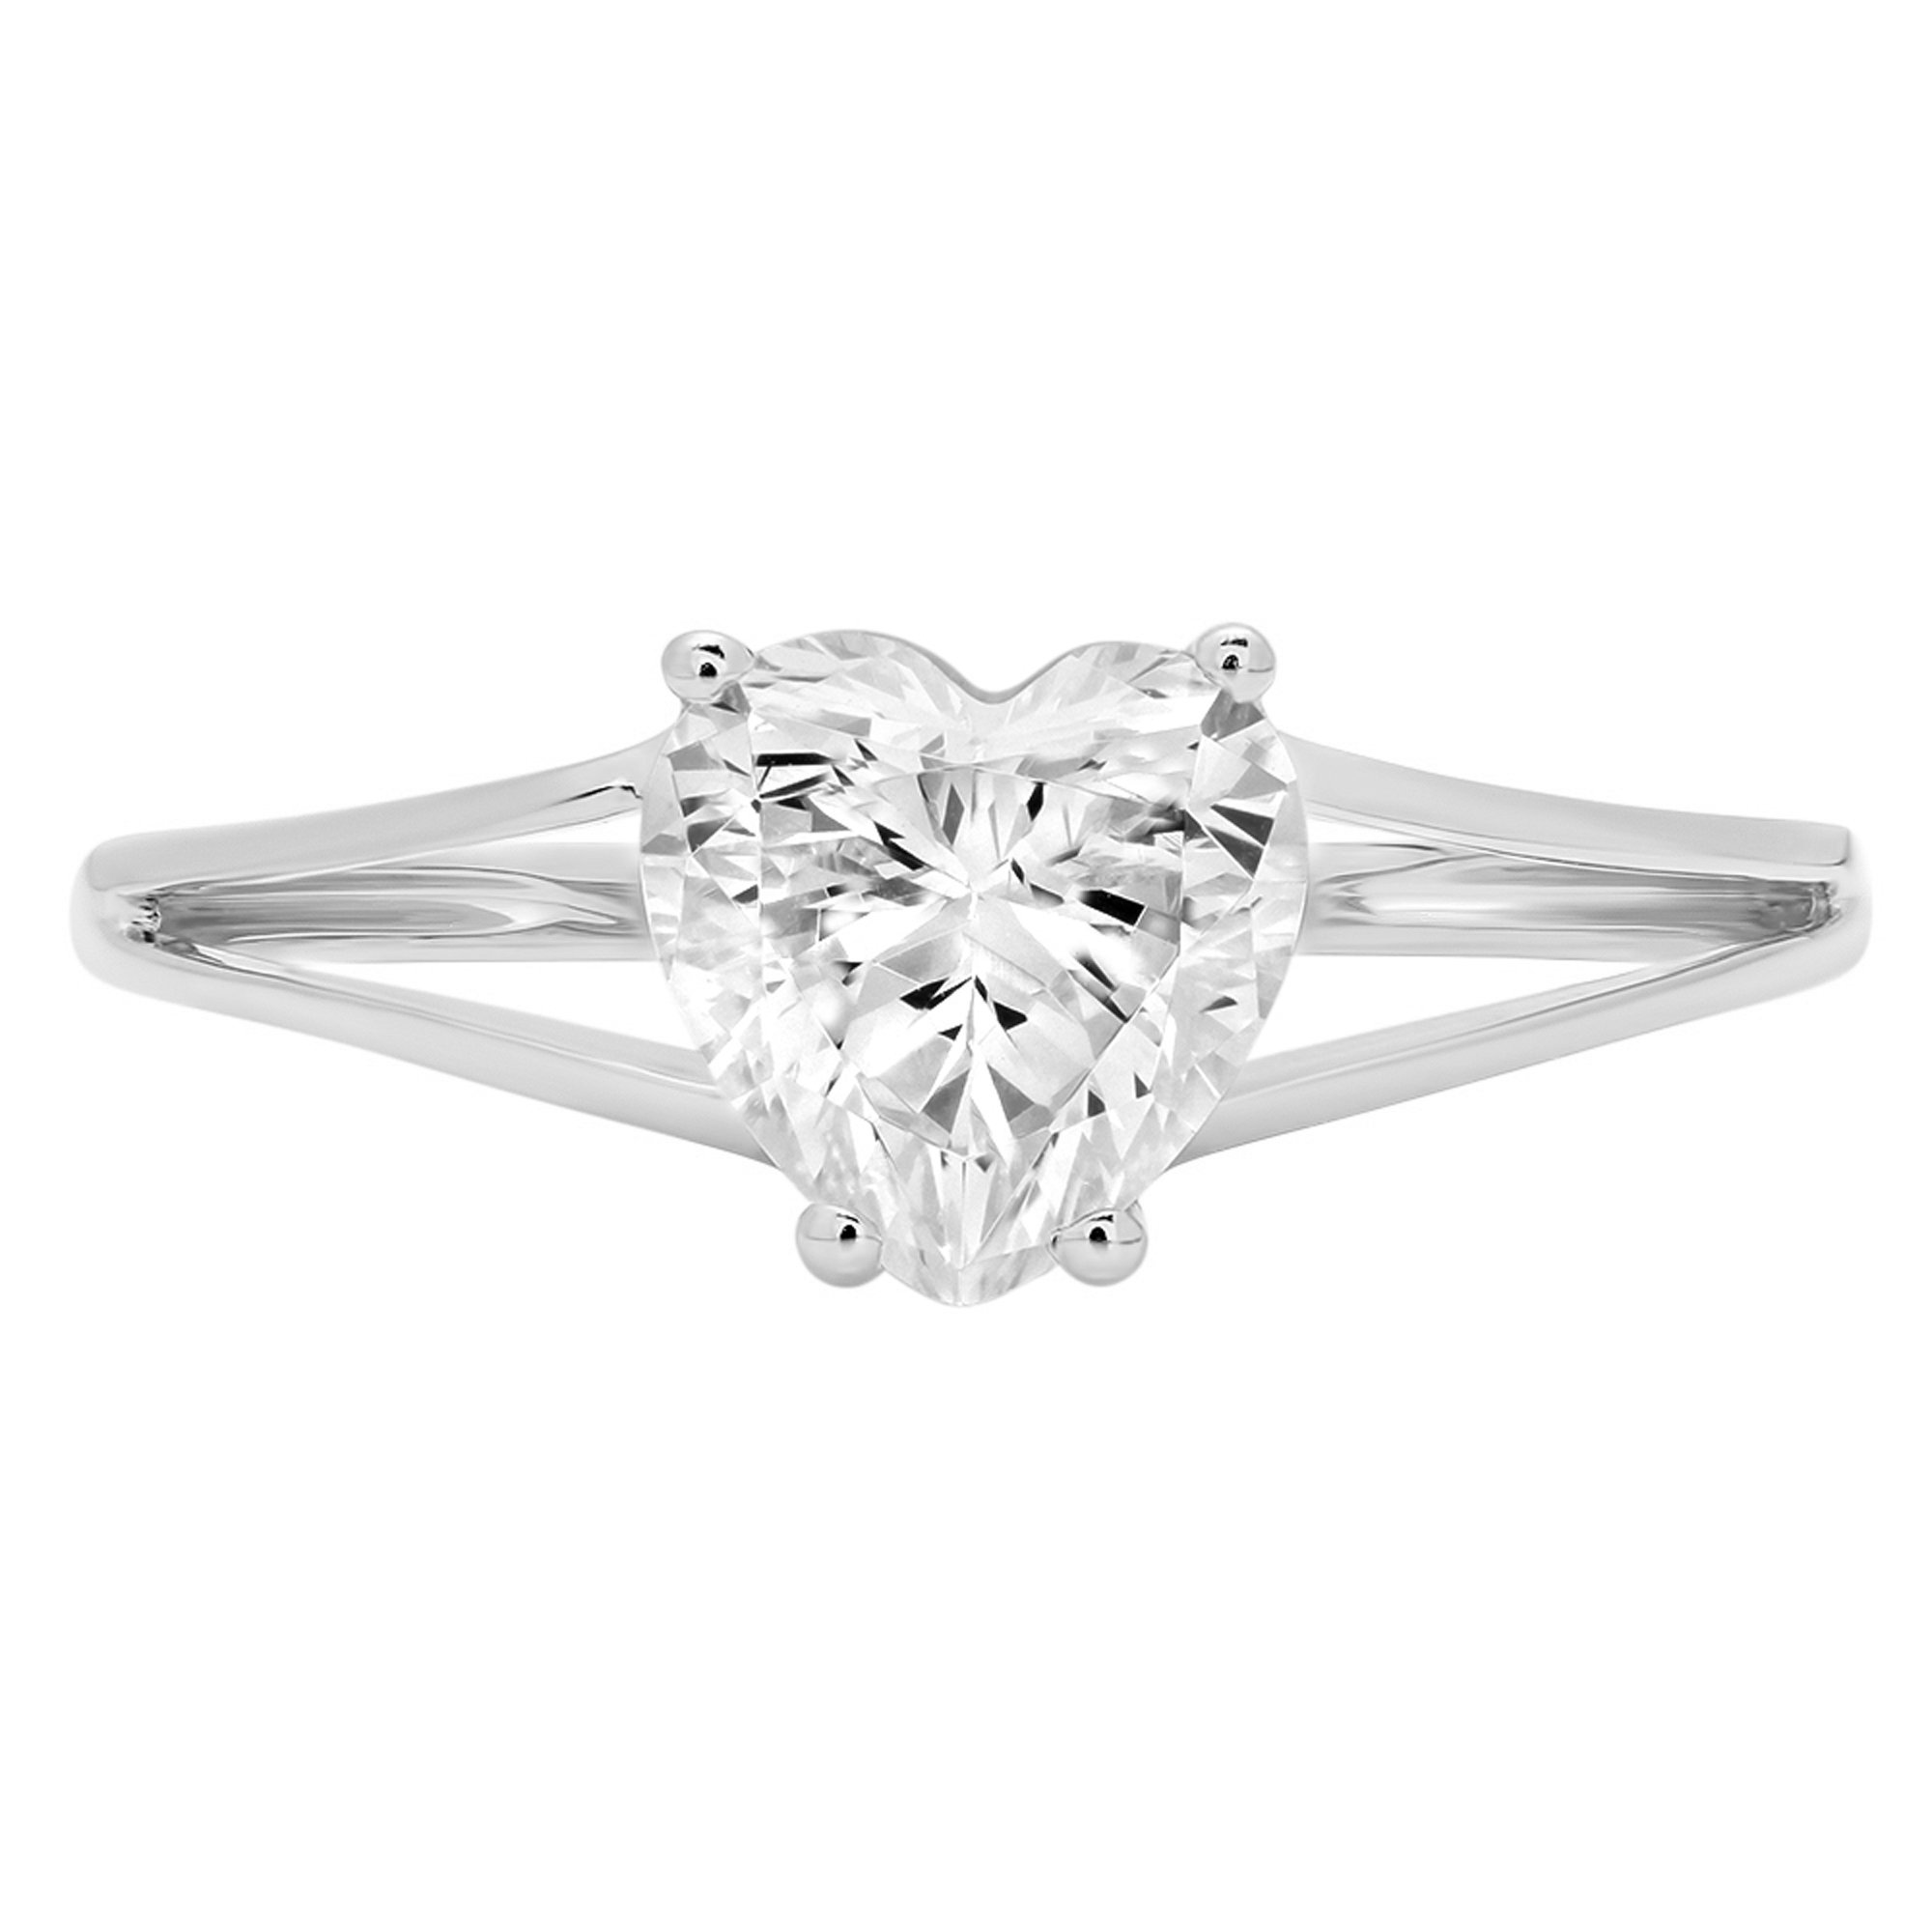 1.3ct Brilliant Heart Cut Designer Solitaire Promise Anniversary Statement Engagement Wedding Bridal Promise Ring For Women Solid 14k White Gold, 7